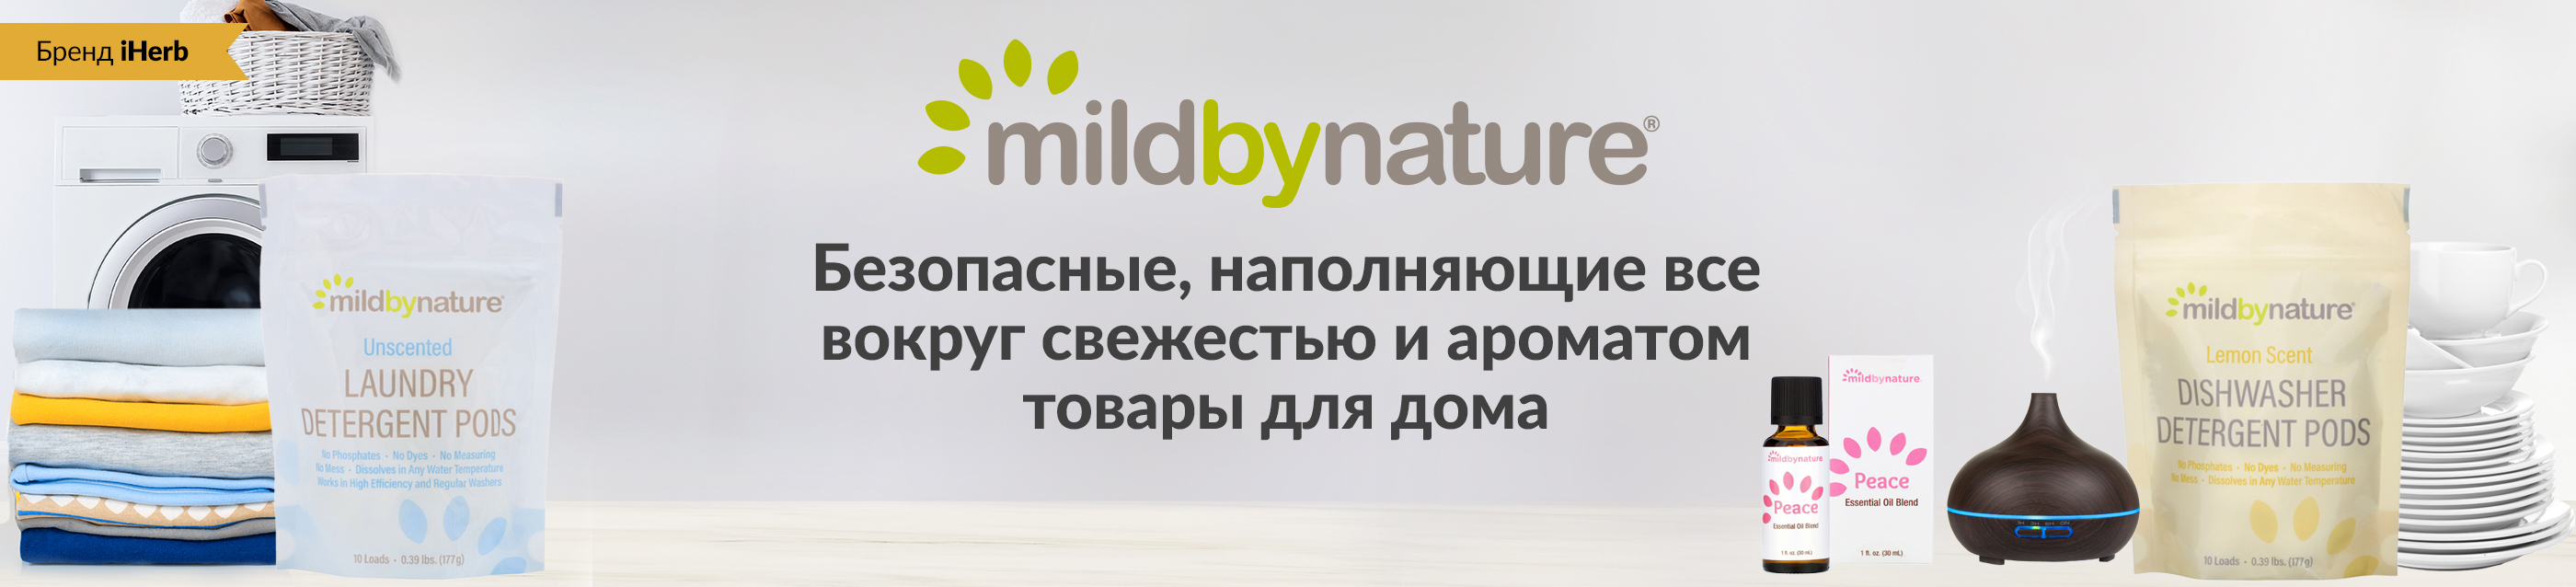 Mild By Nature Home